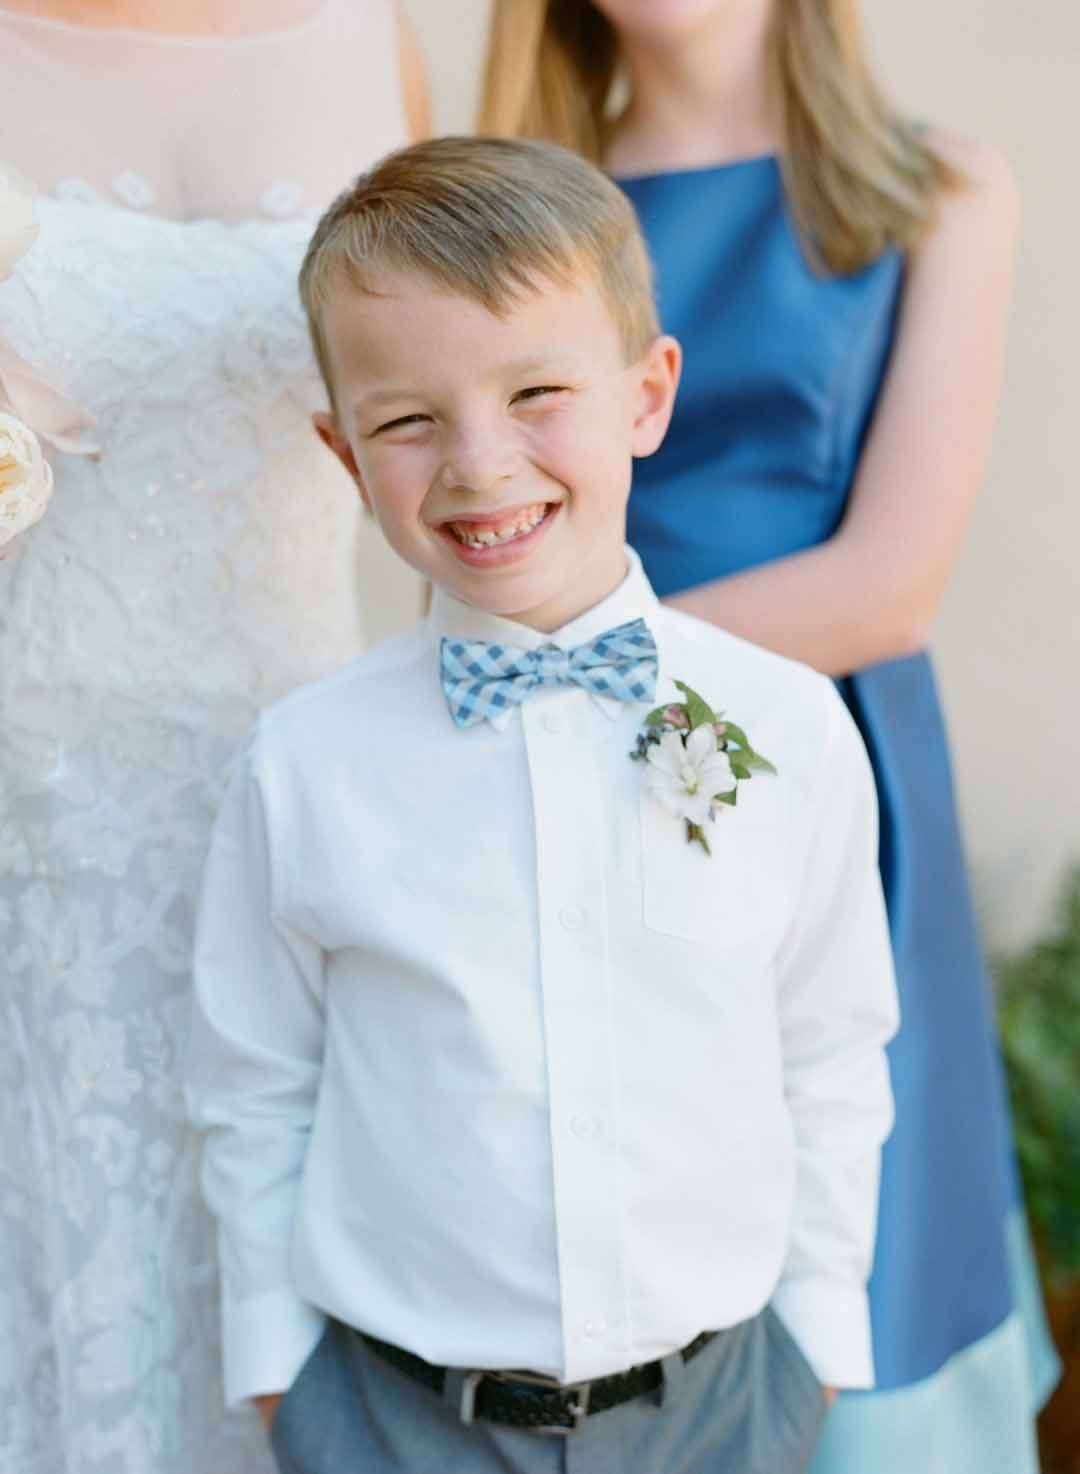 Classic ring bearer outfit